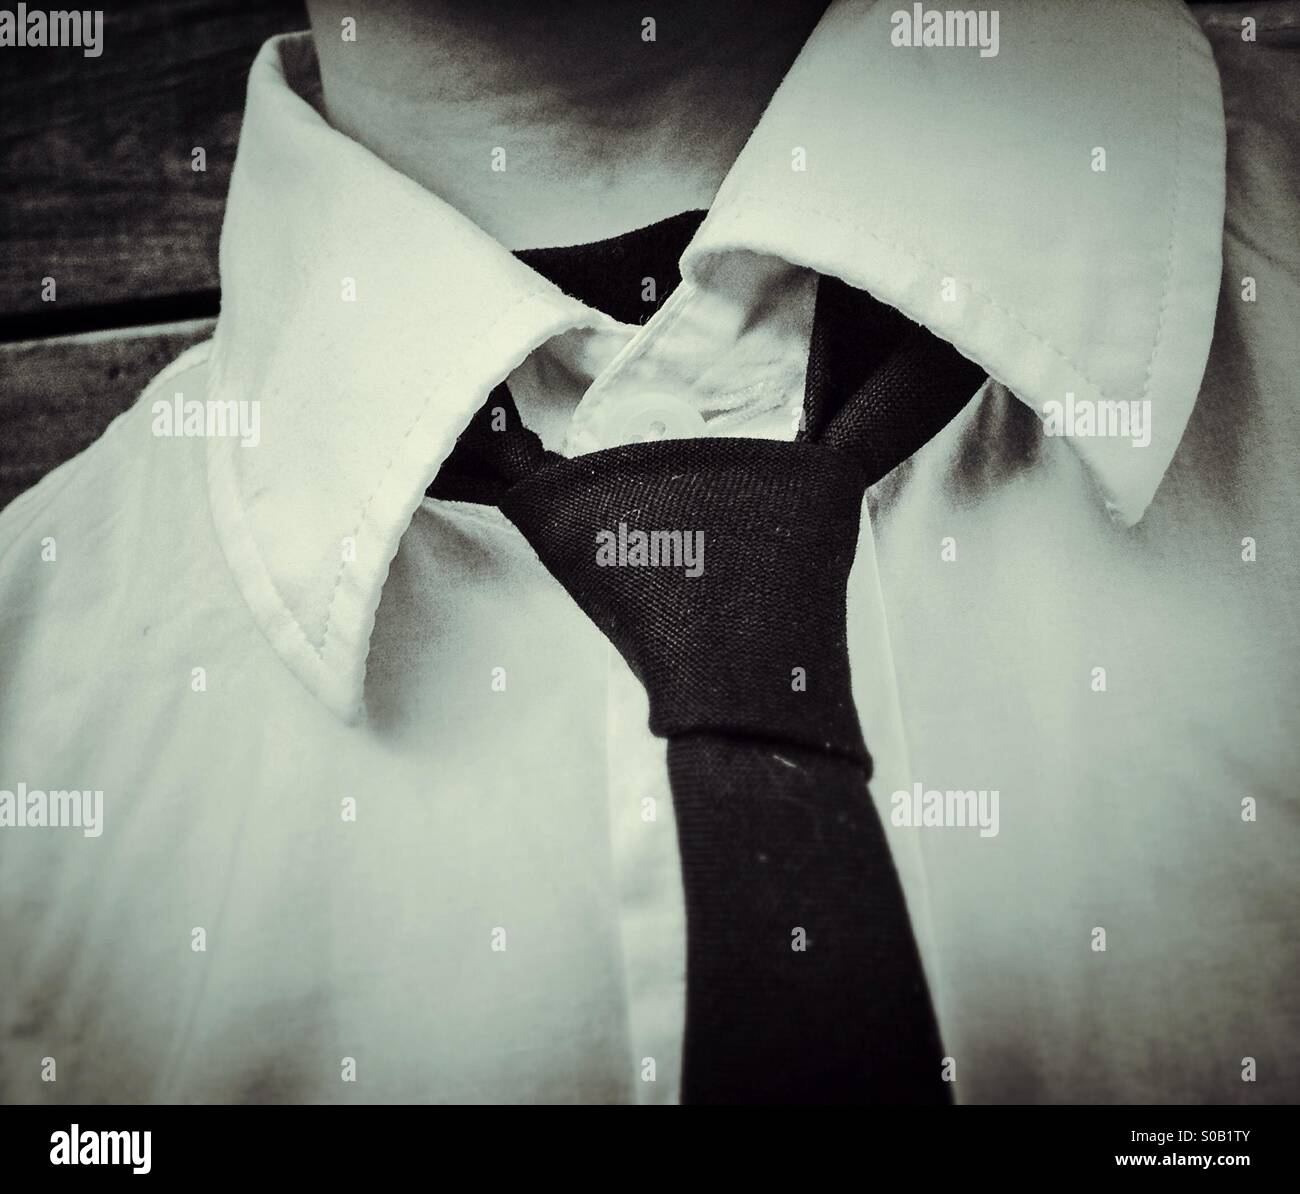 Man with shirt and tie Stock Photo